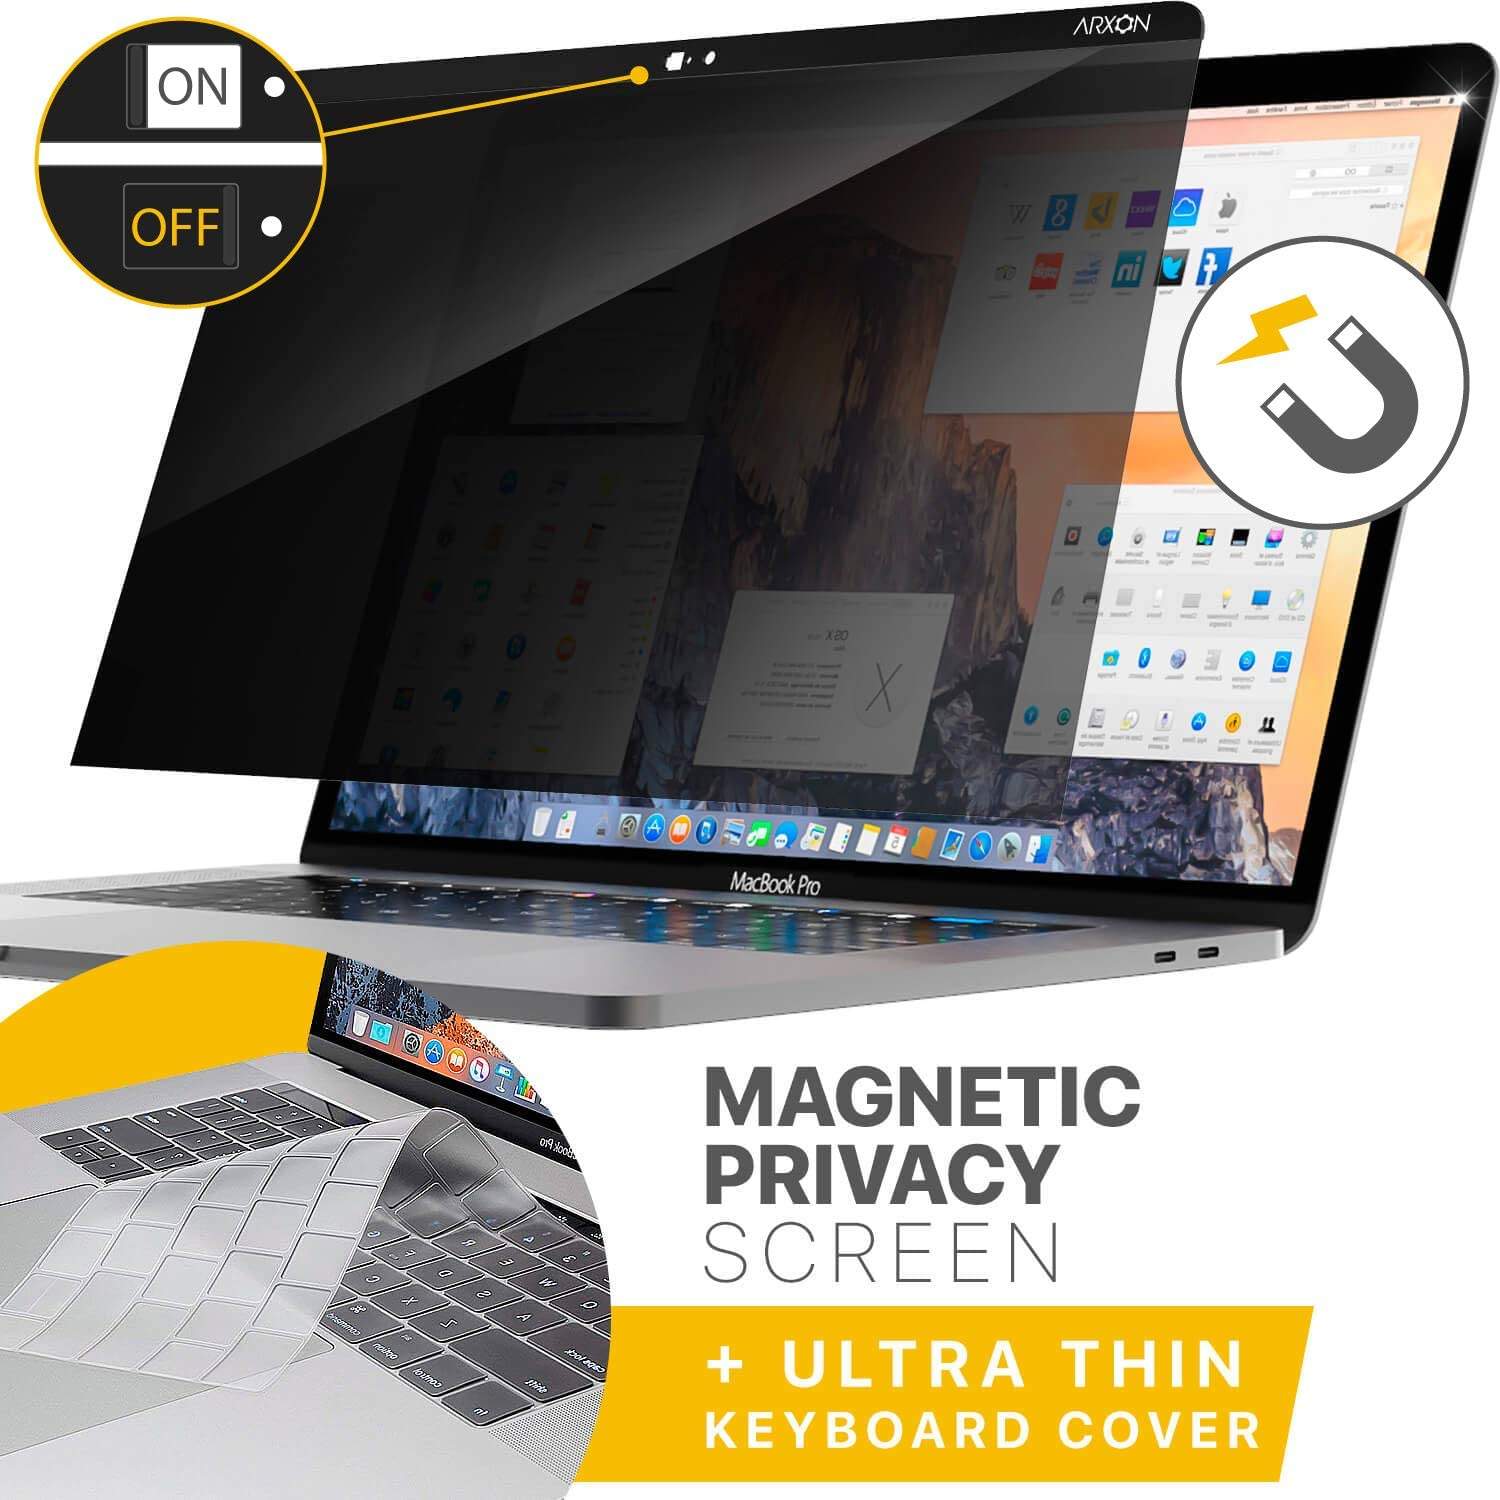 Arxon MacBook Pro Magnetic Privacy Filter Screen Protector 15 Inch 2016/2017/2018 MacBook Pro Anti Glare Easy on/Off with Webcam Cover